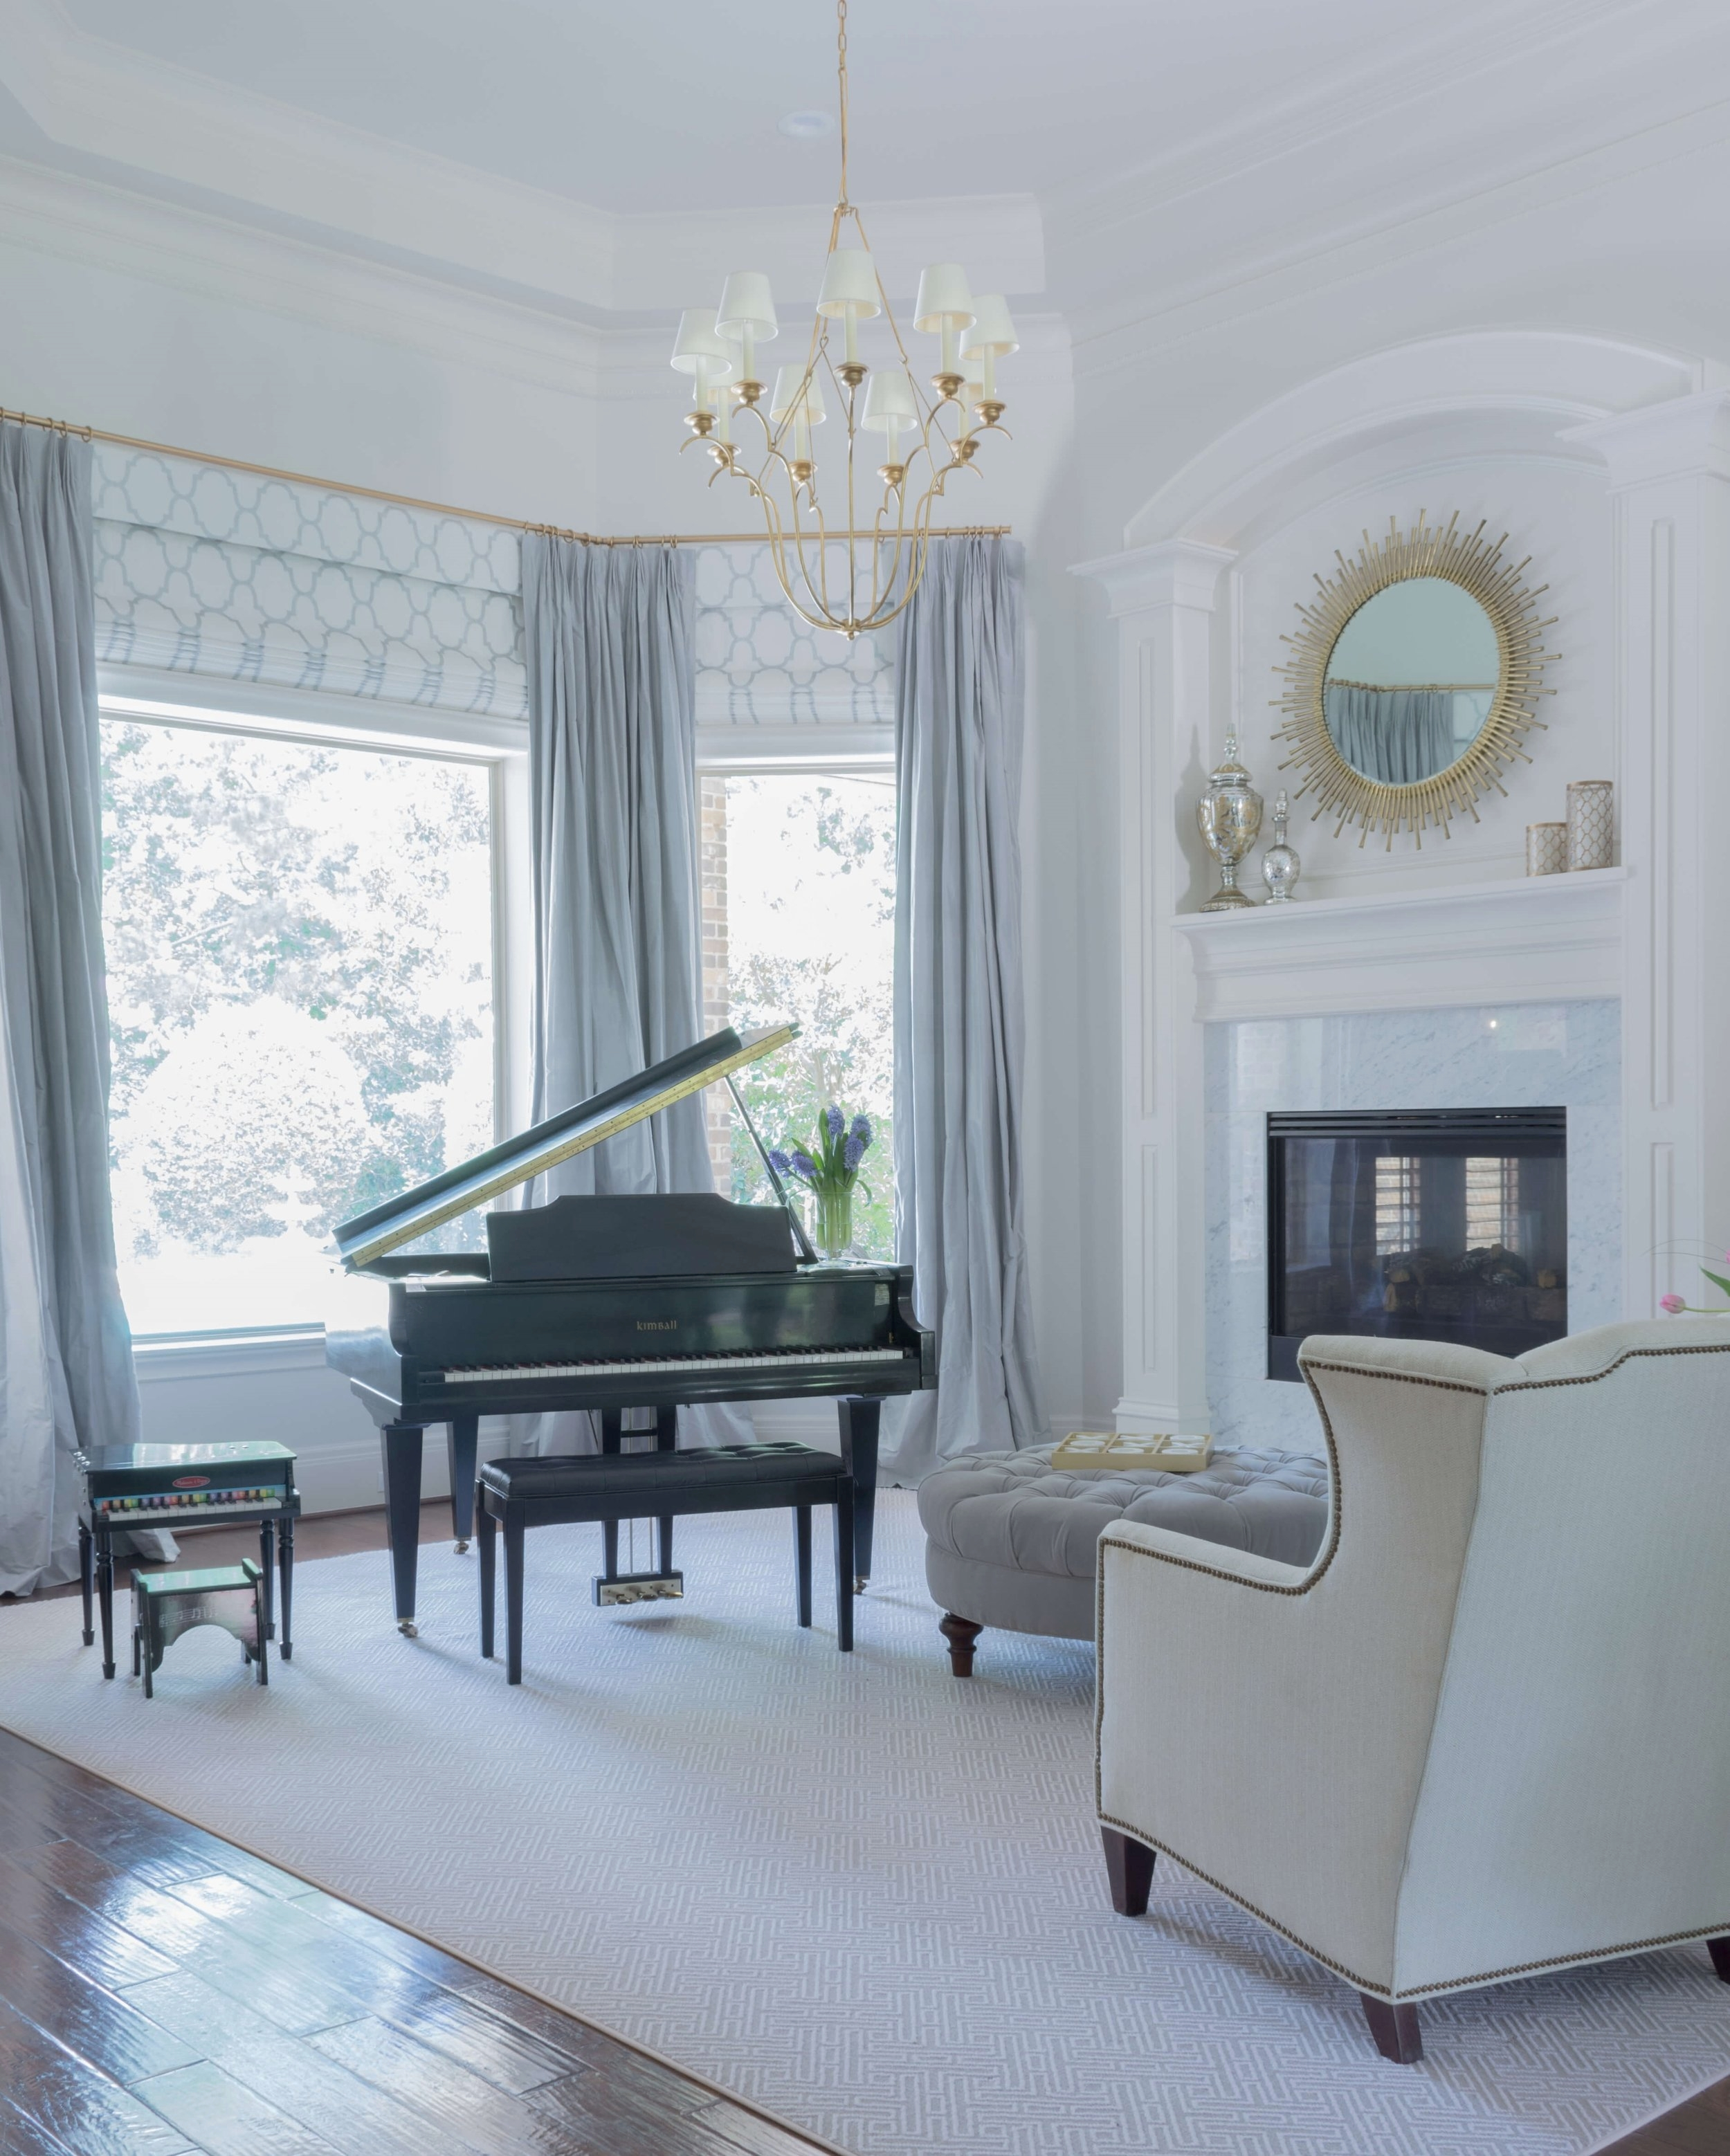 Making a formal living room a little more child-friendly | After - Living Room with baby grand piano and marble fireplace and gilded chandelier | Designer: Carla Aston, Photographer: Charles Behrend #livingroomideas #livingroom